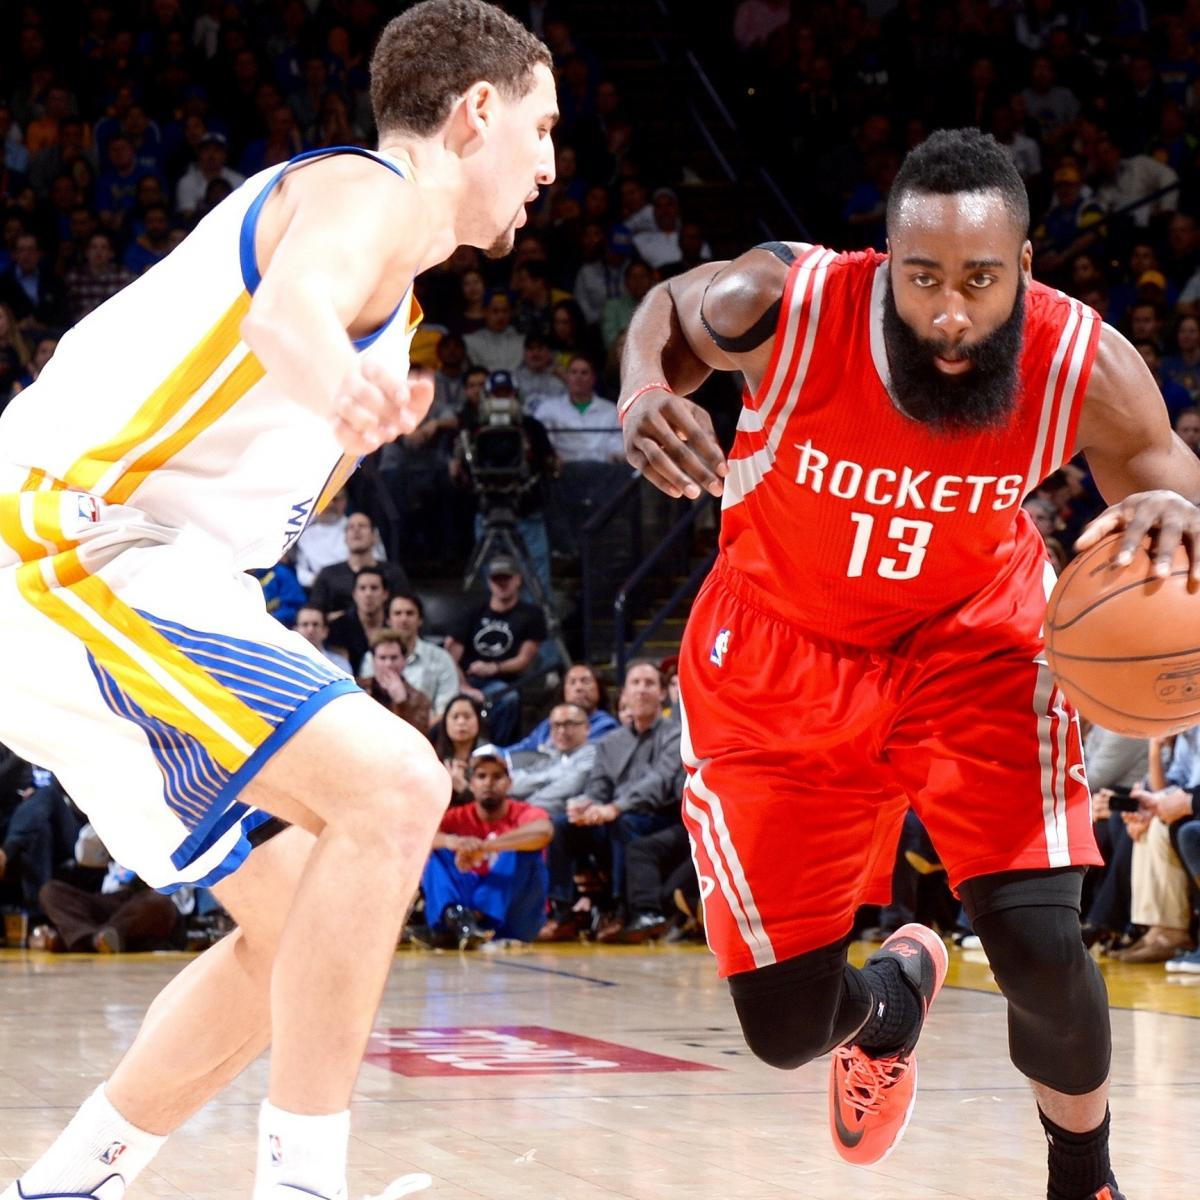 Rockets Vs Warriors Twitter Reaction: Rockets Vs. Warriors: Analysis And Predictions For Western